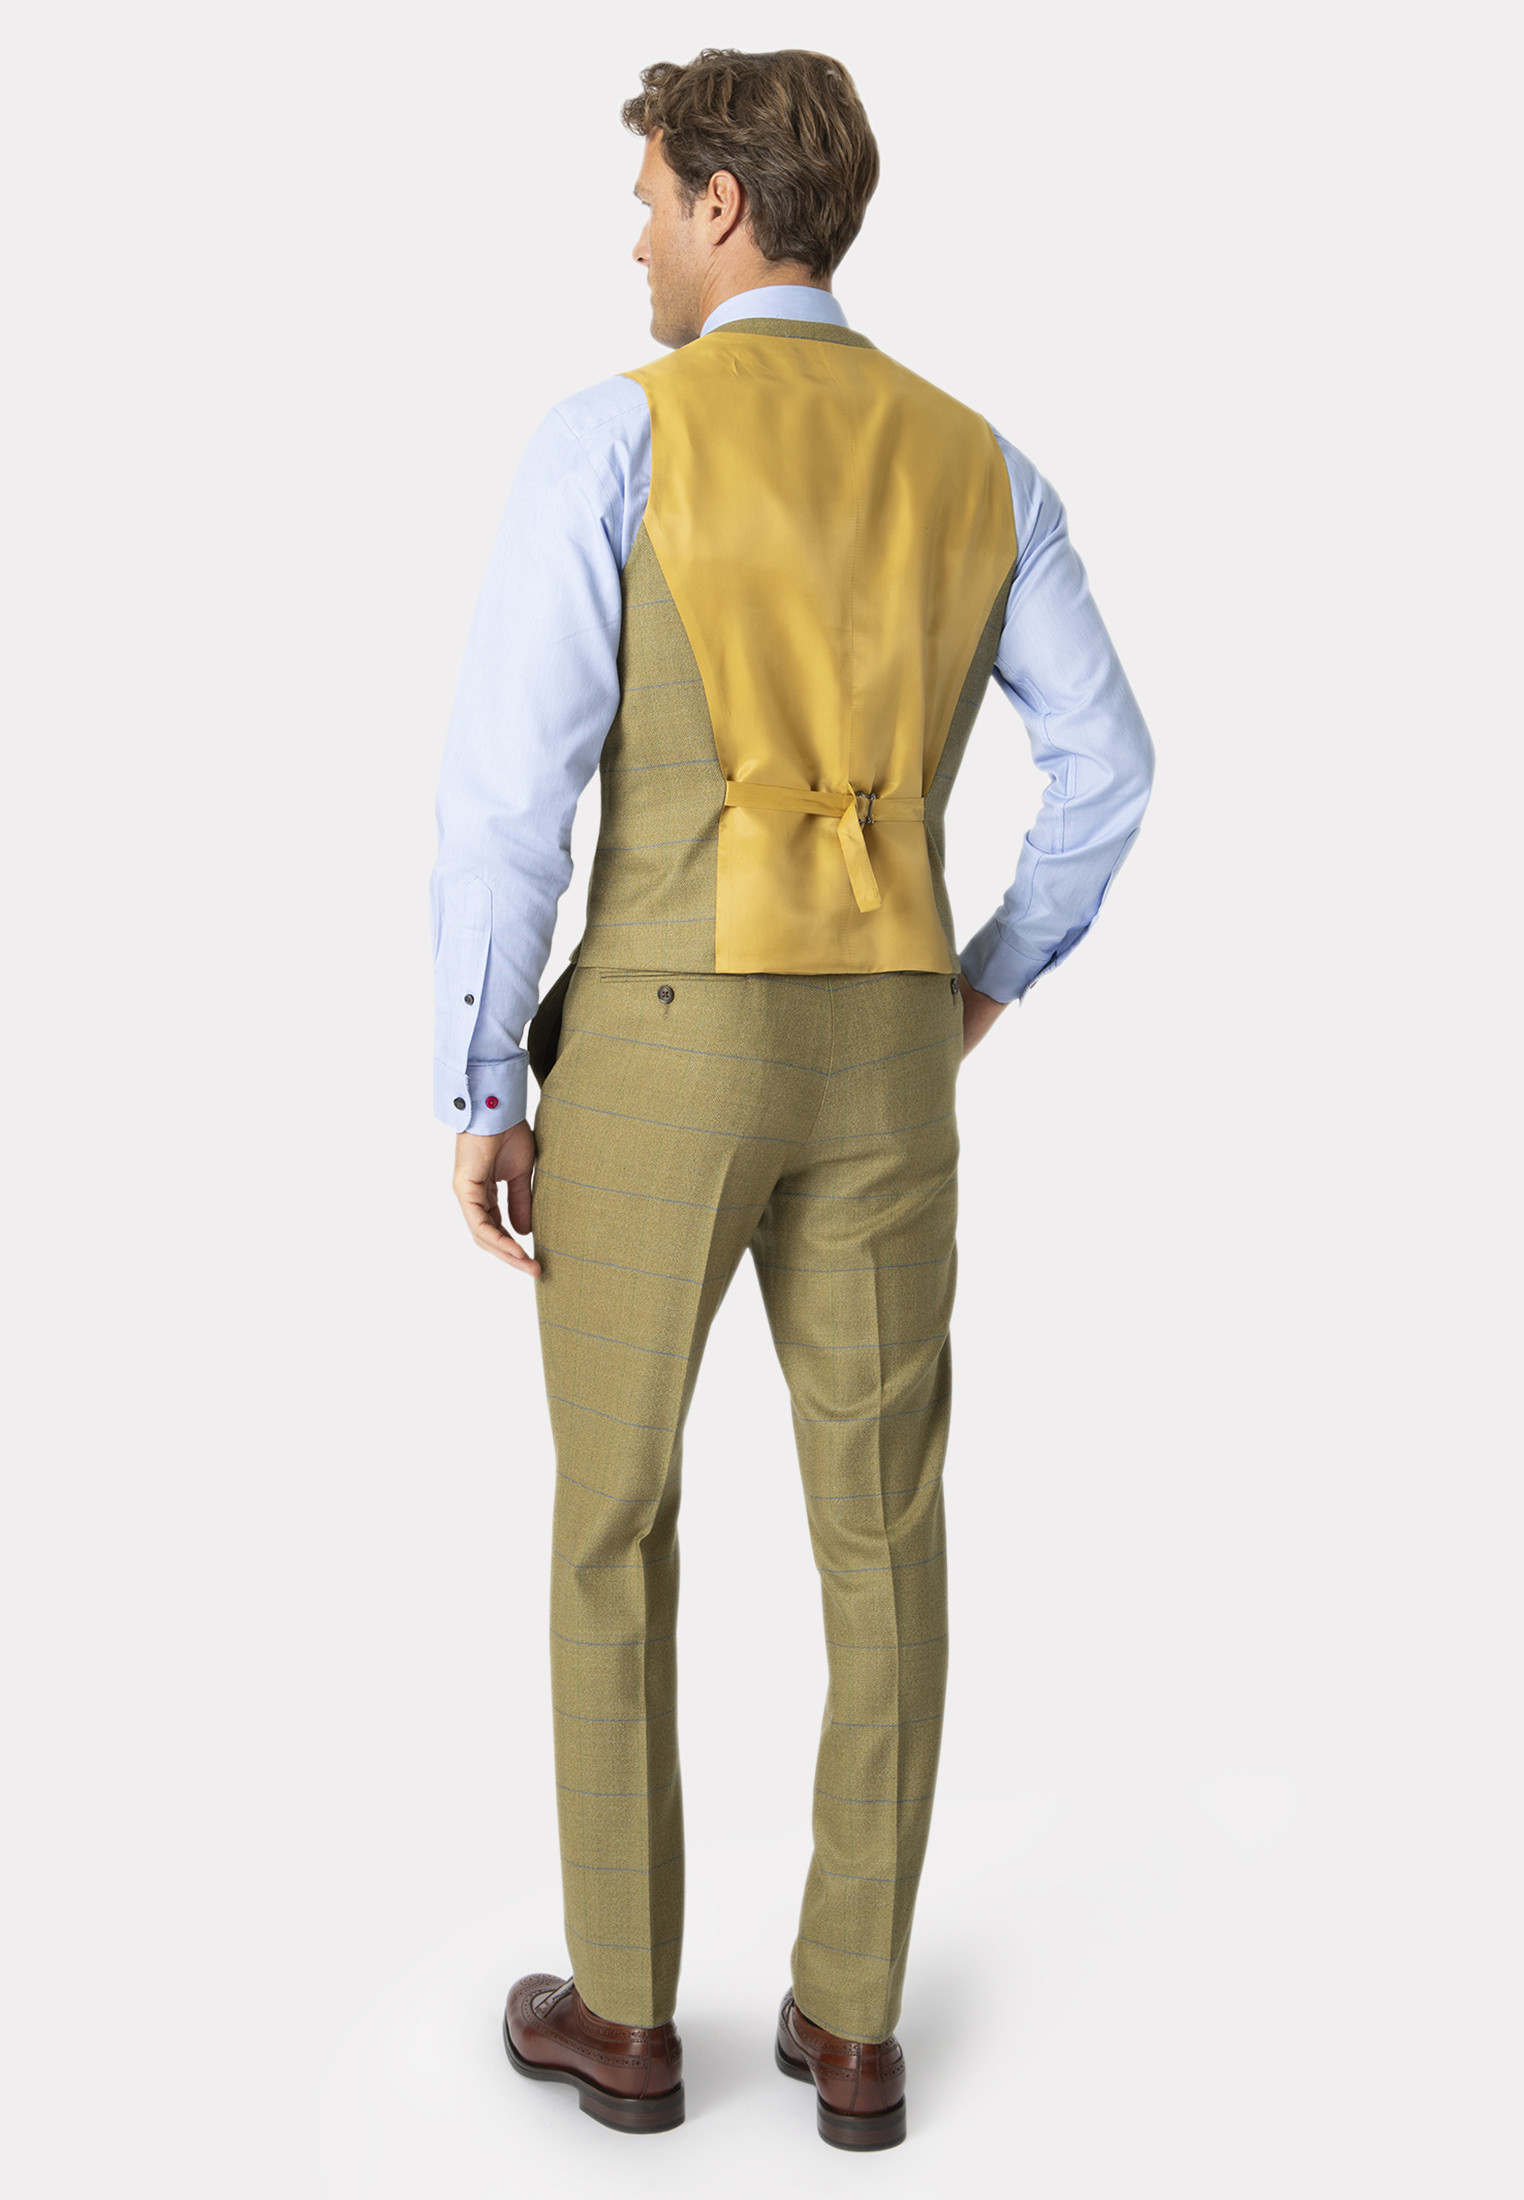 Fountains Sage Check Pure New Wool Suit - Waistcoat Optional